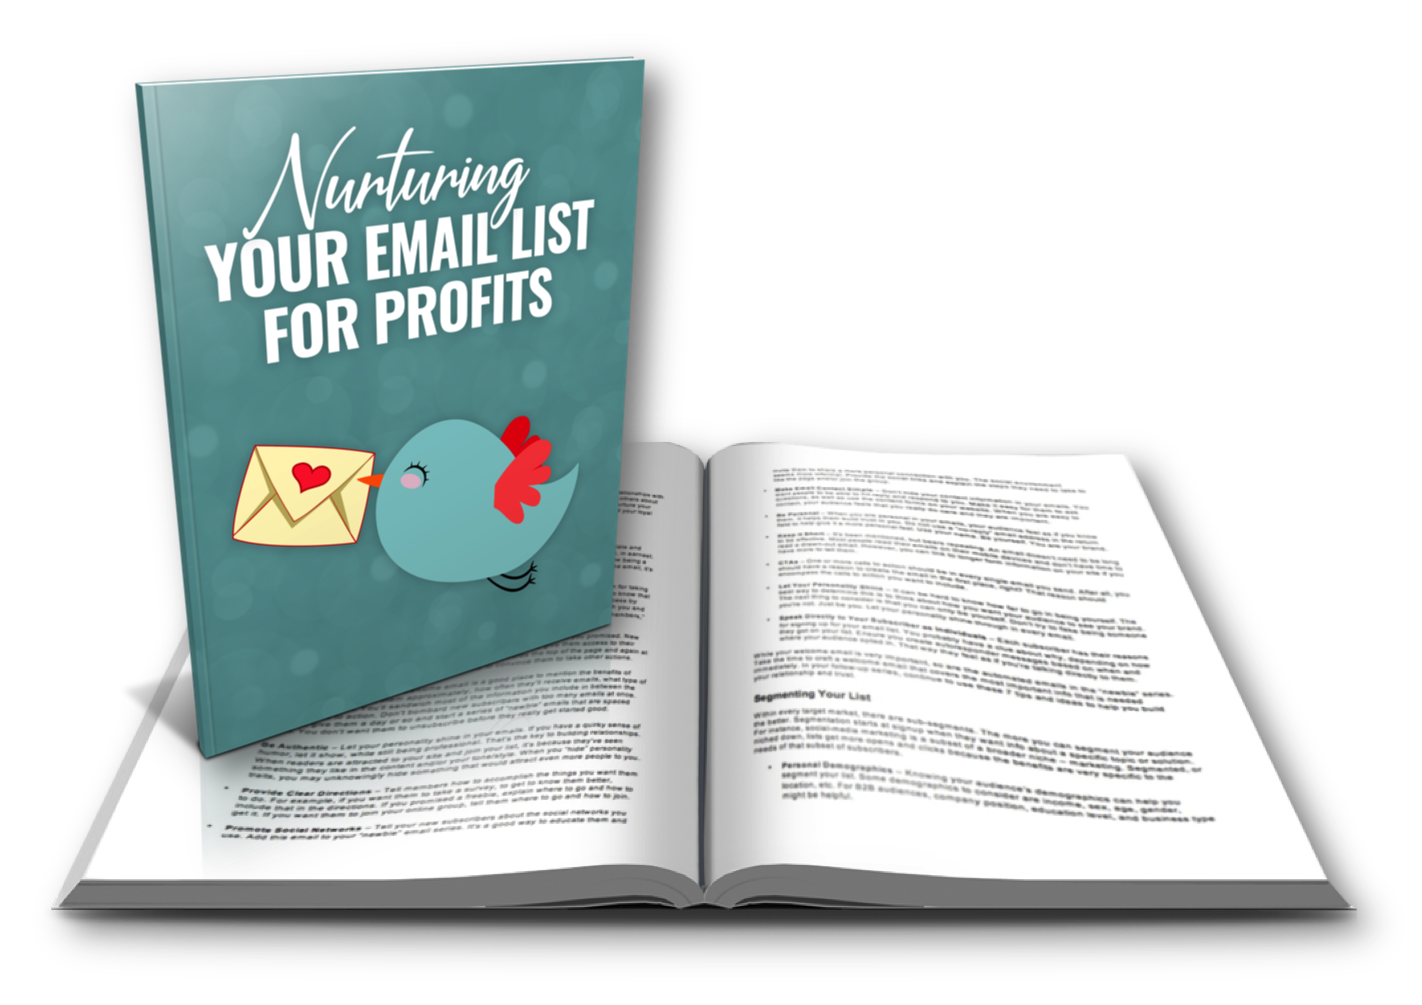 Nurturing Your Email List for Profits